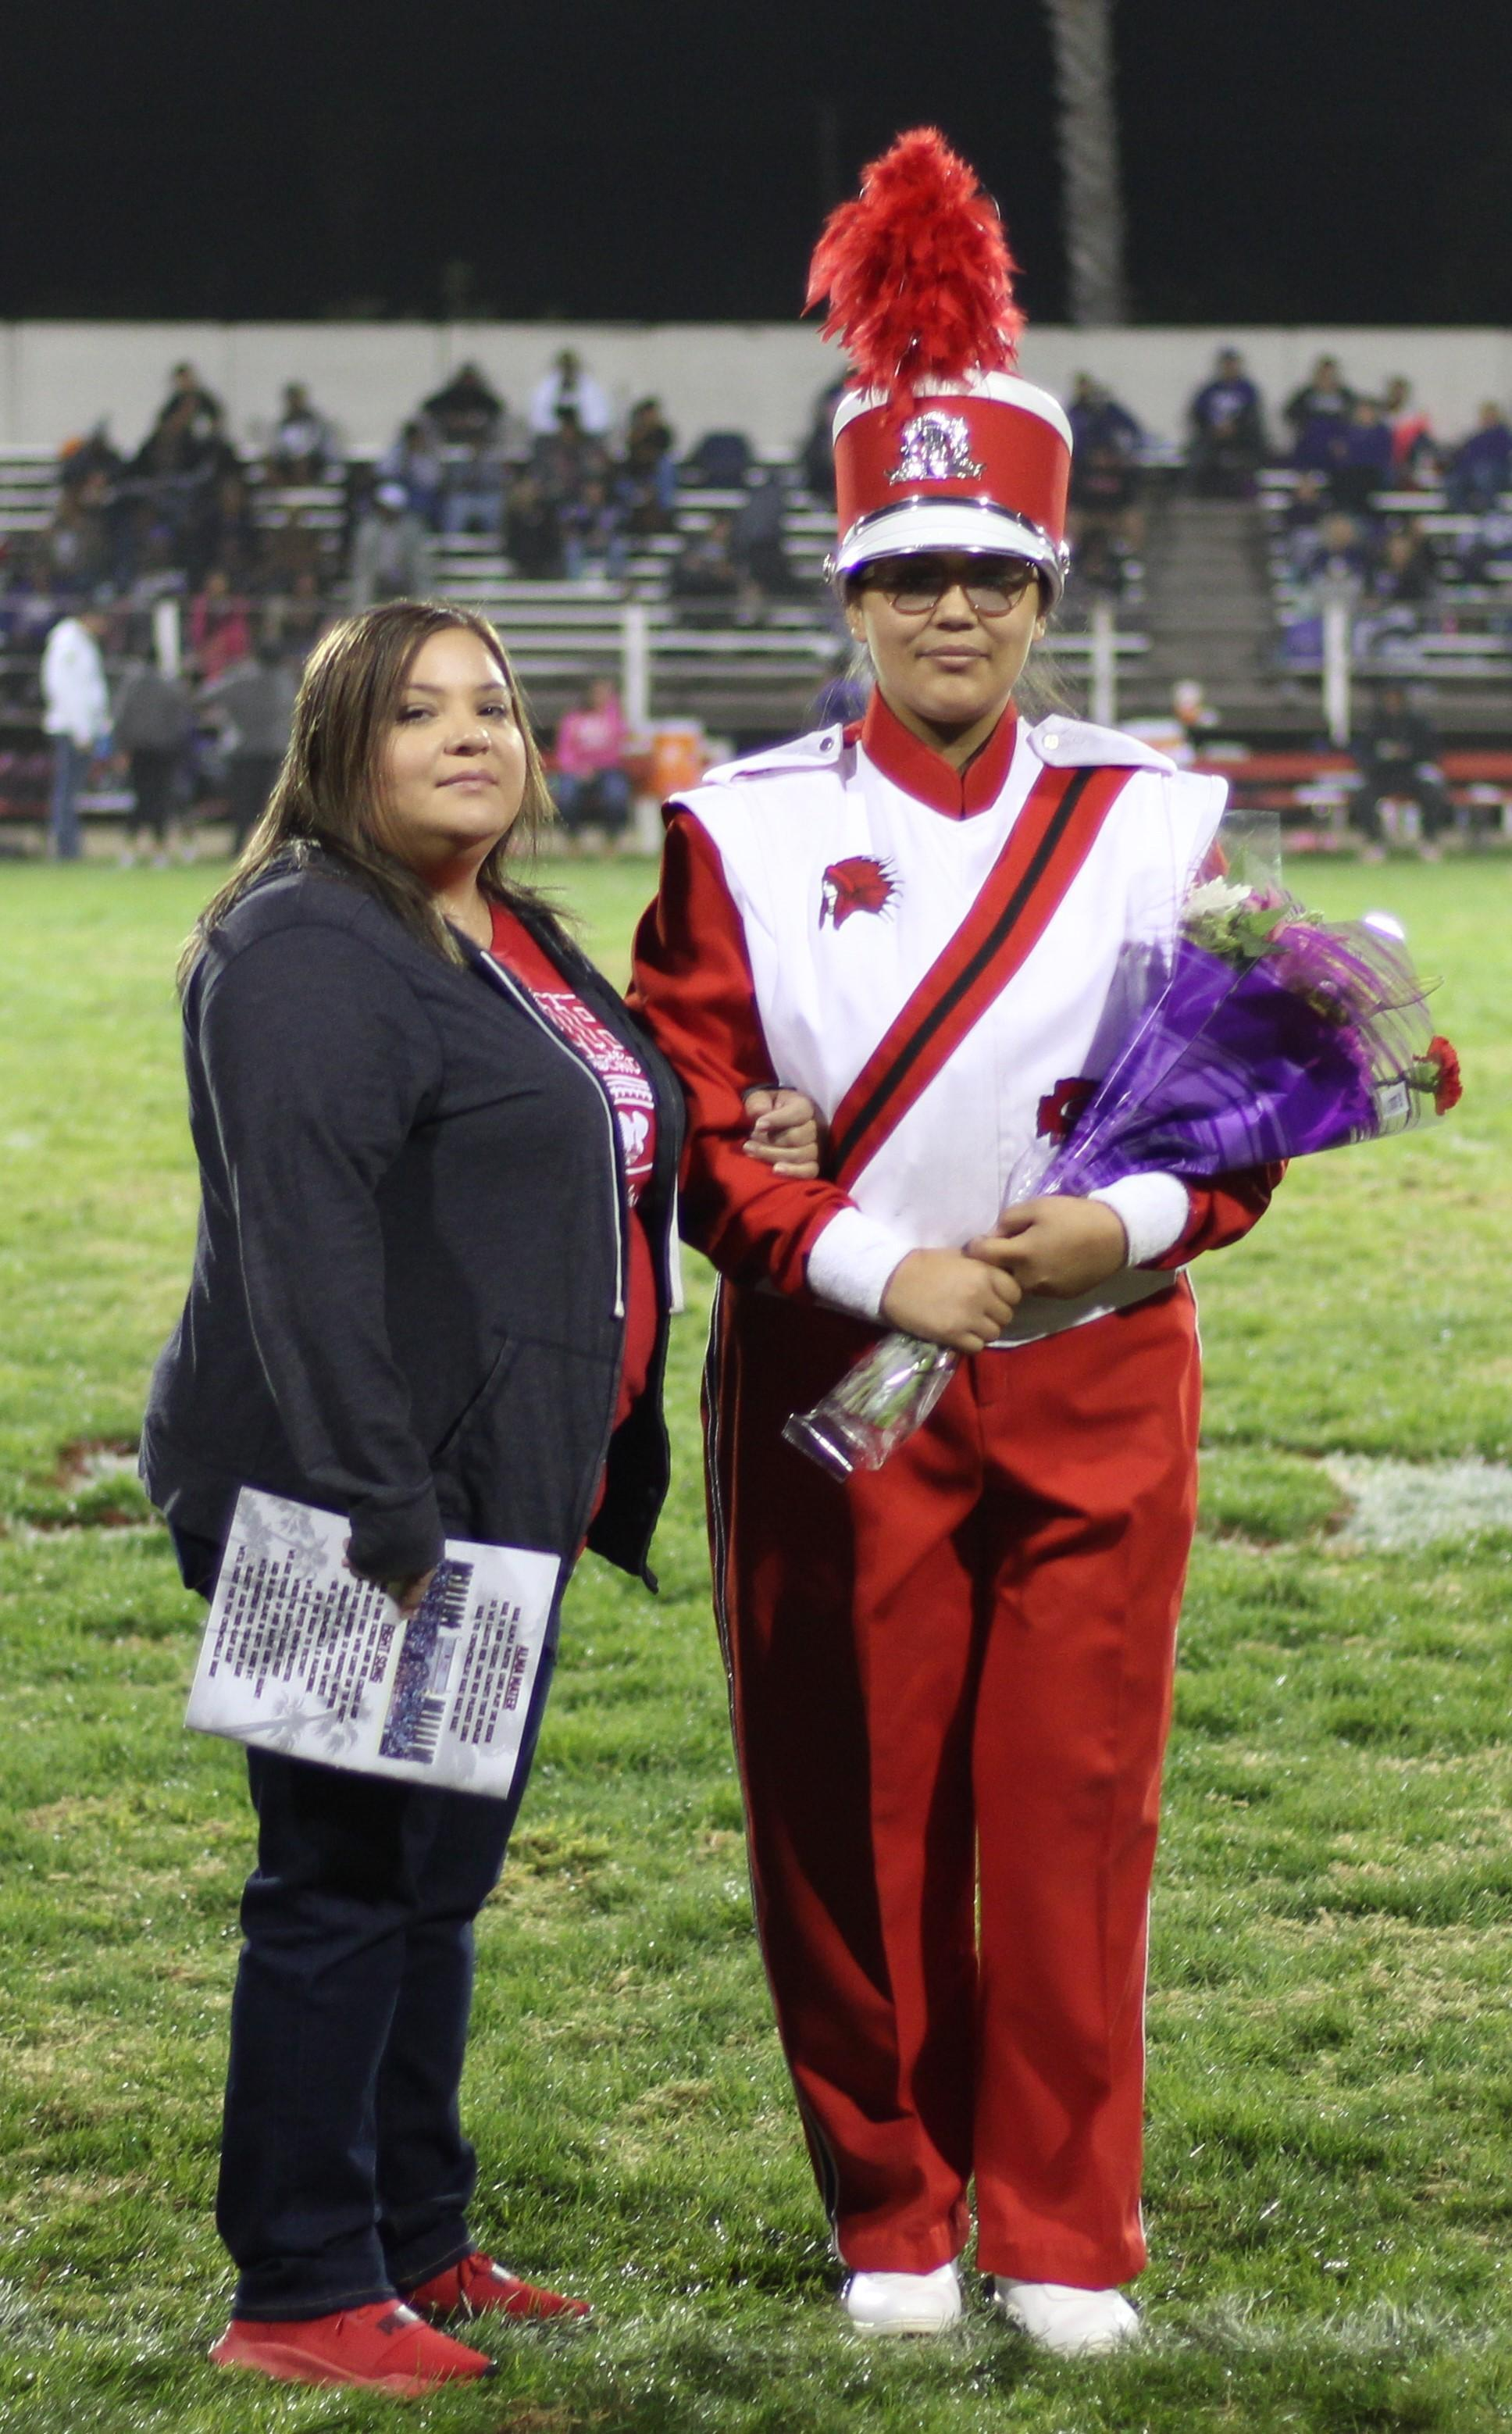 Senior band member Jessalyn Guardado and her escort.